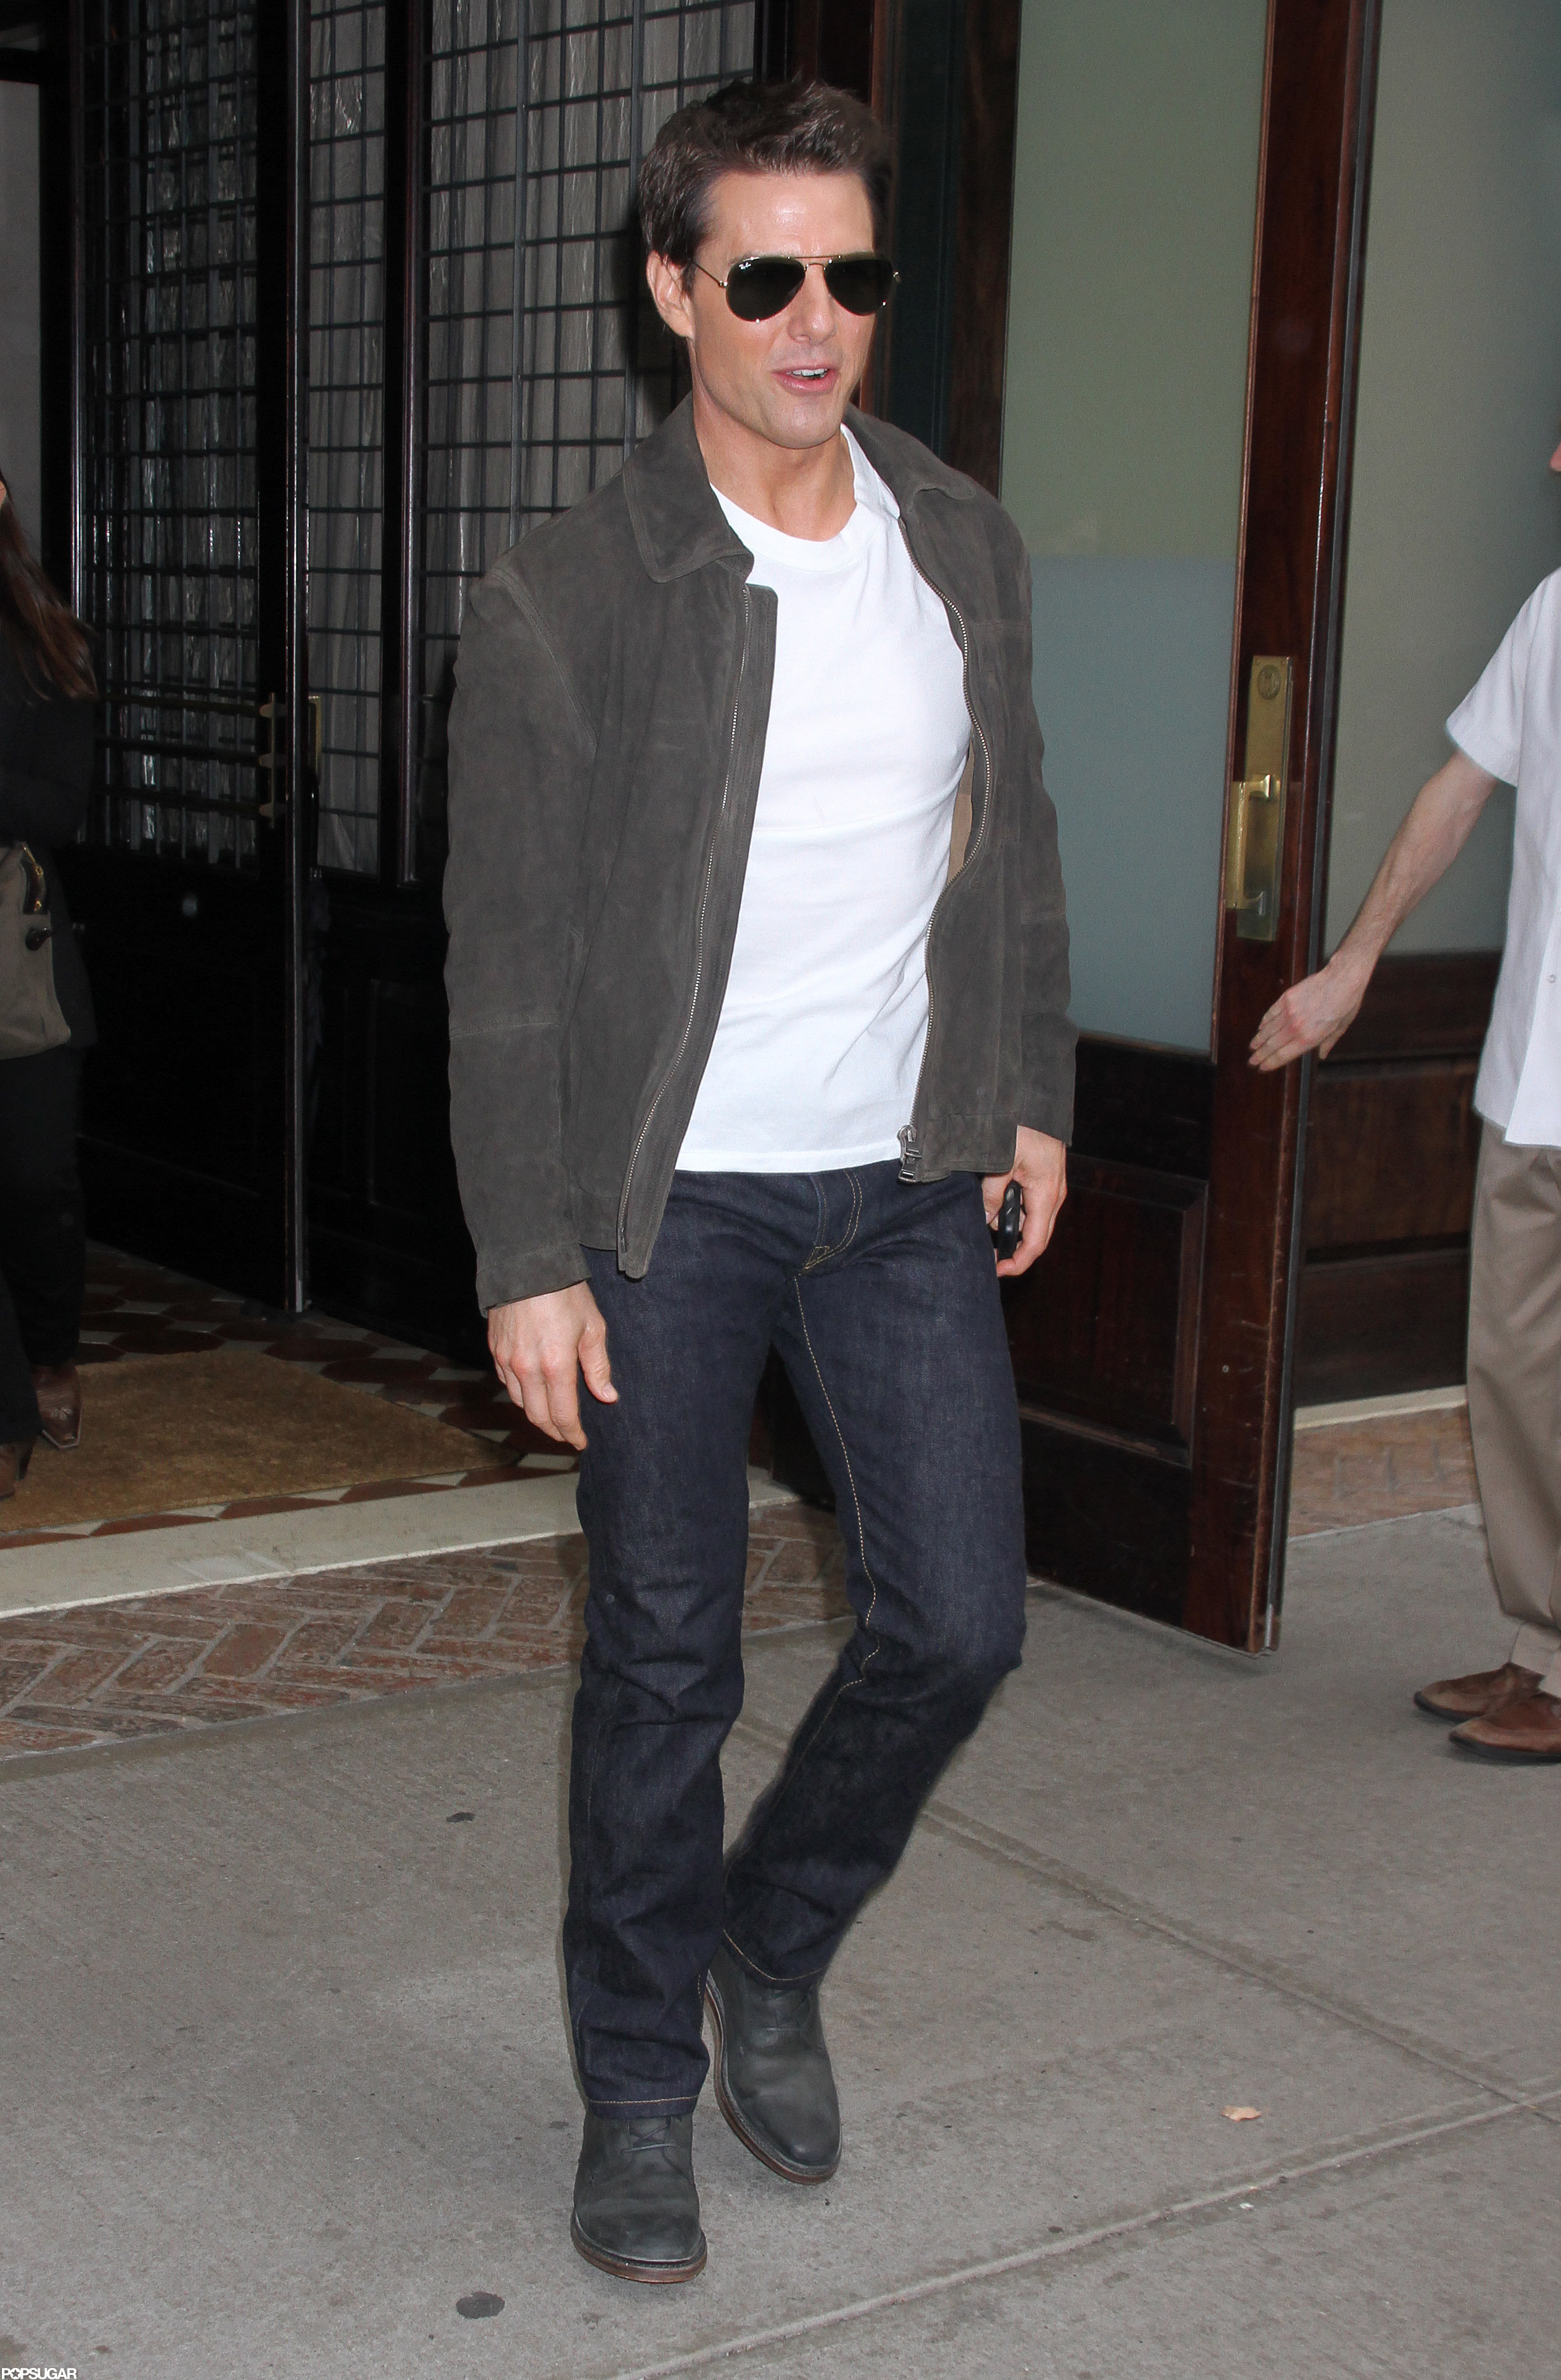 Tom Cruise kept it casual in jeans in NYC.